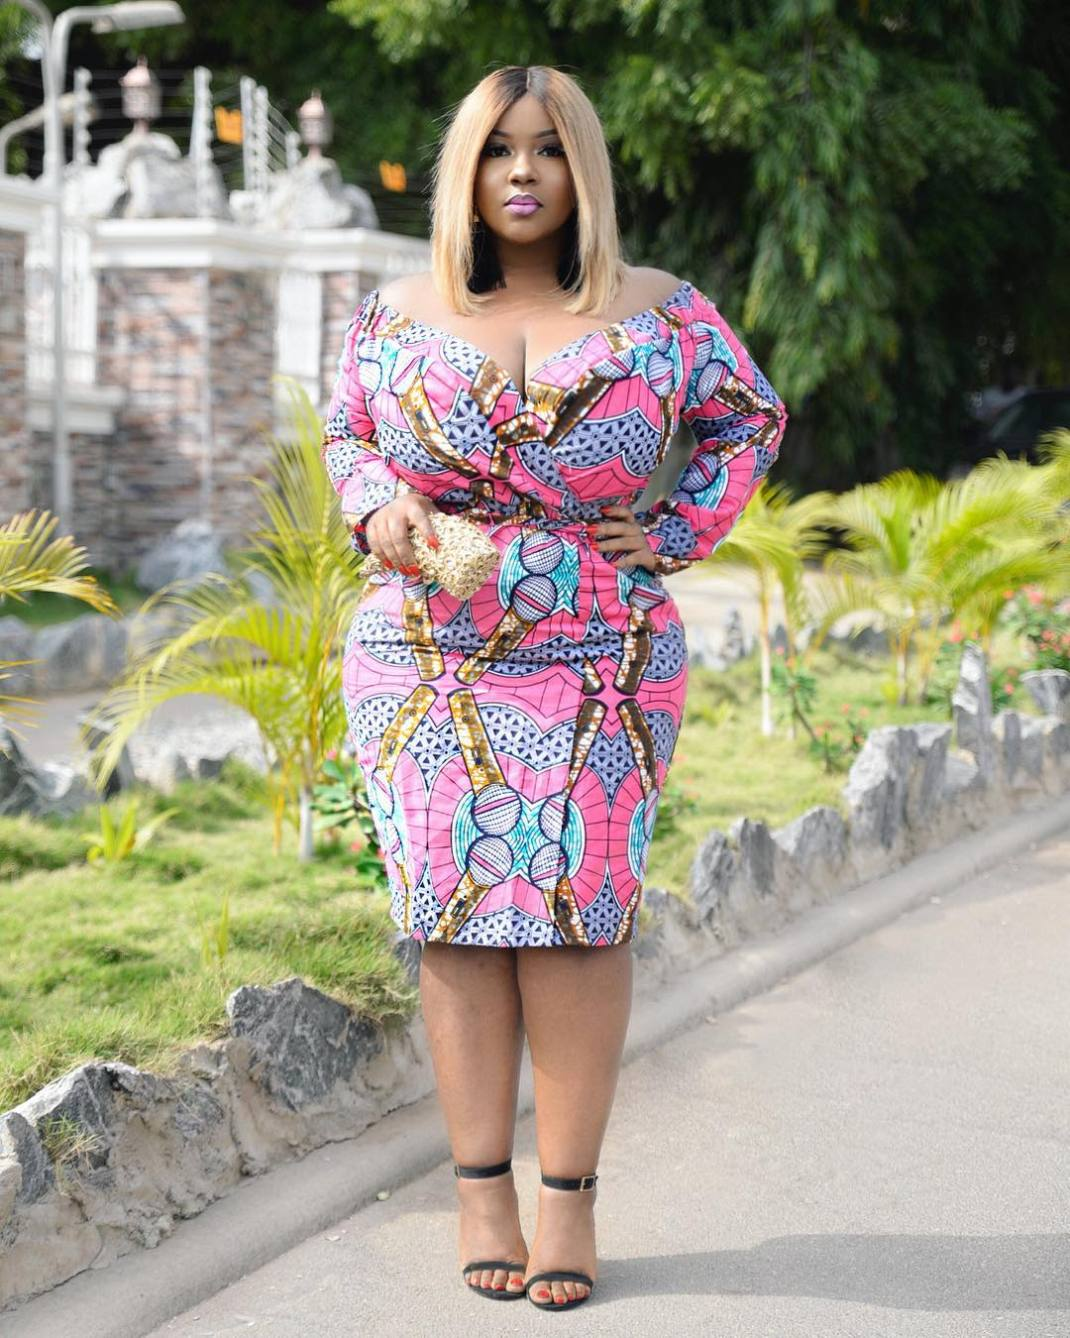 26872614 192902988122382 9021819993431474176 n - This Curvy Influencer Will Show You How To Look Stylish If You Are Plus Size